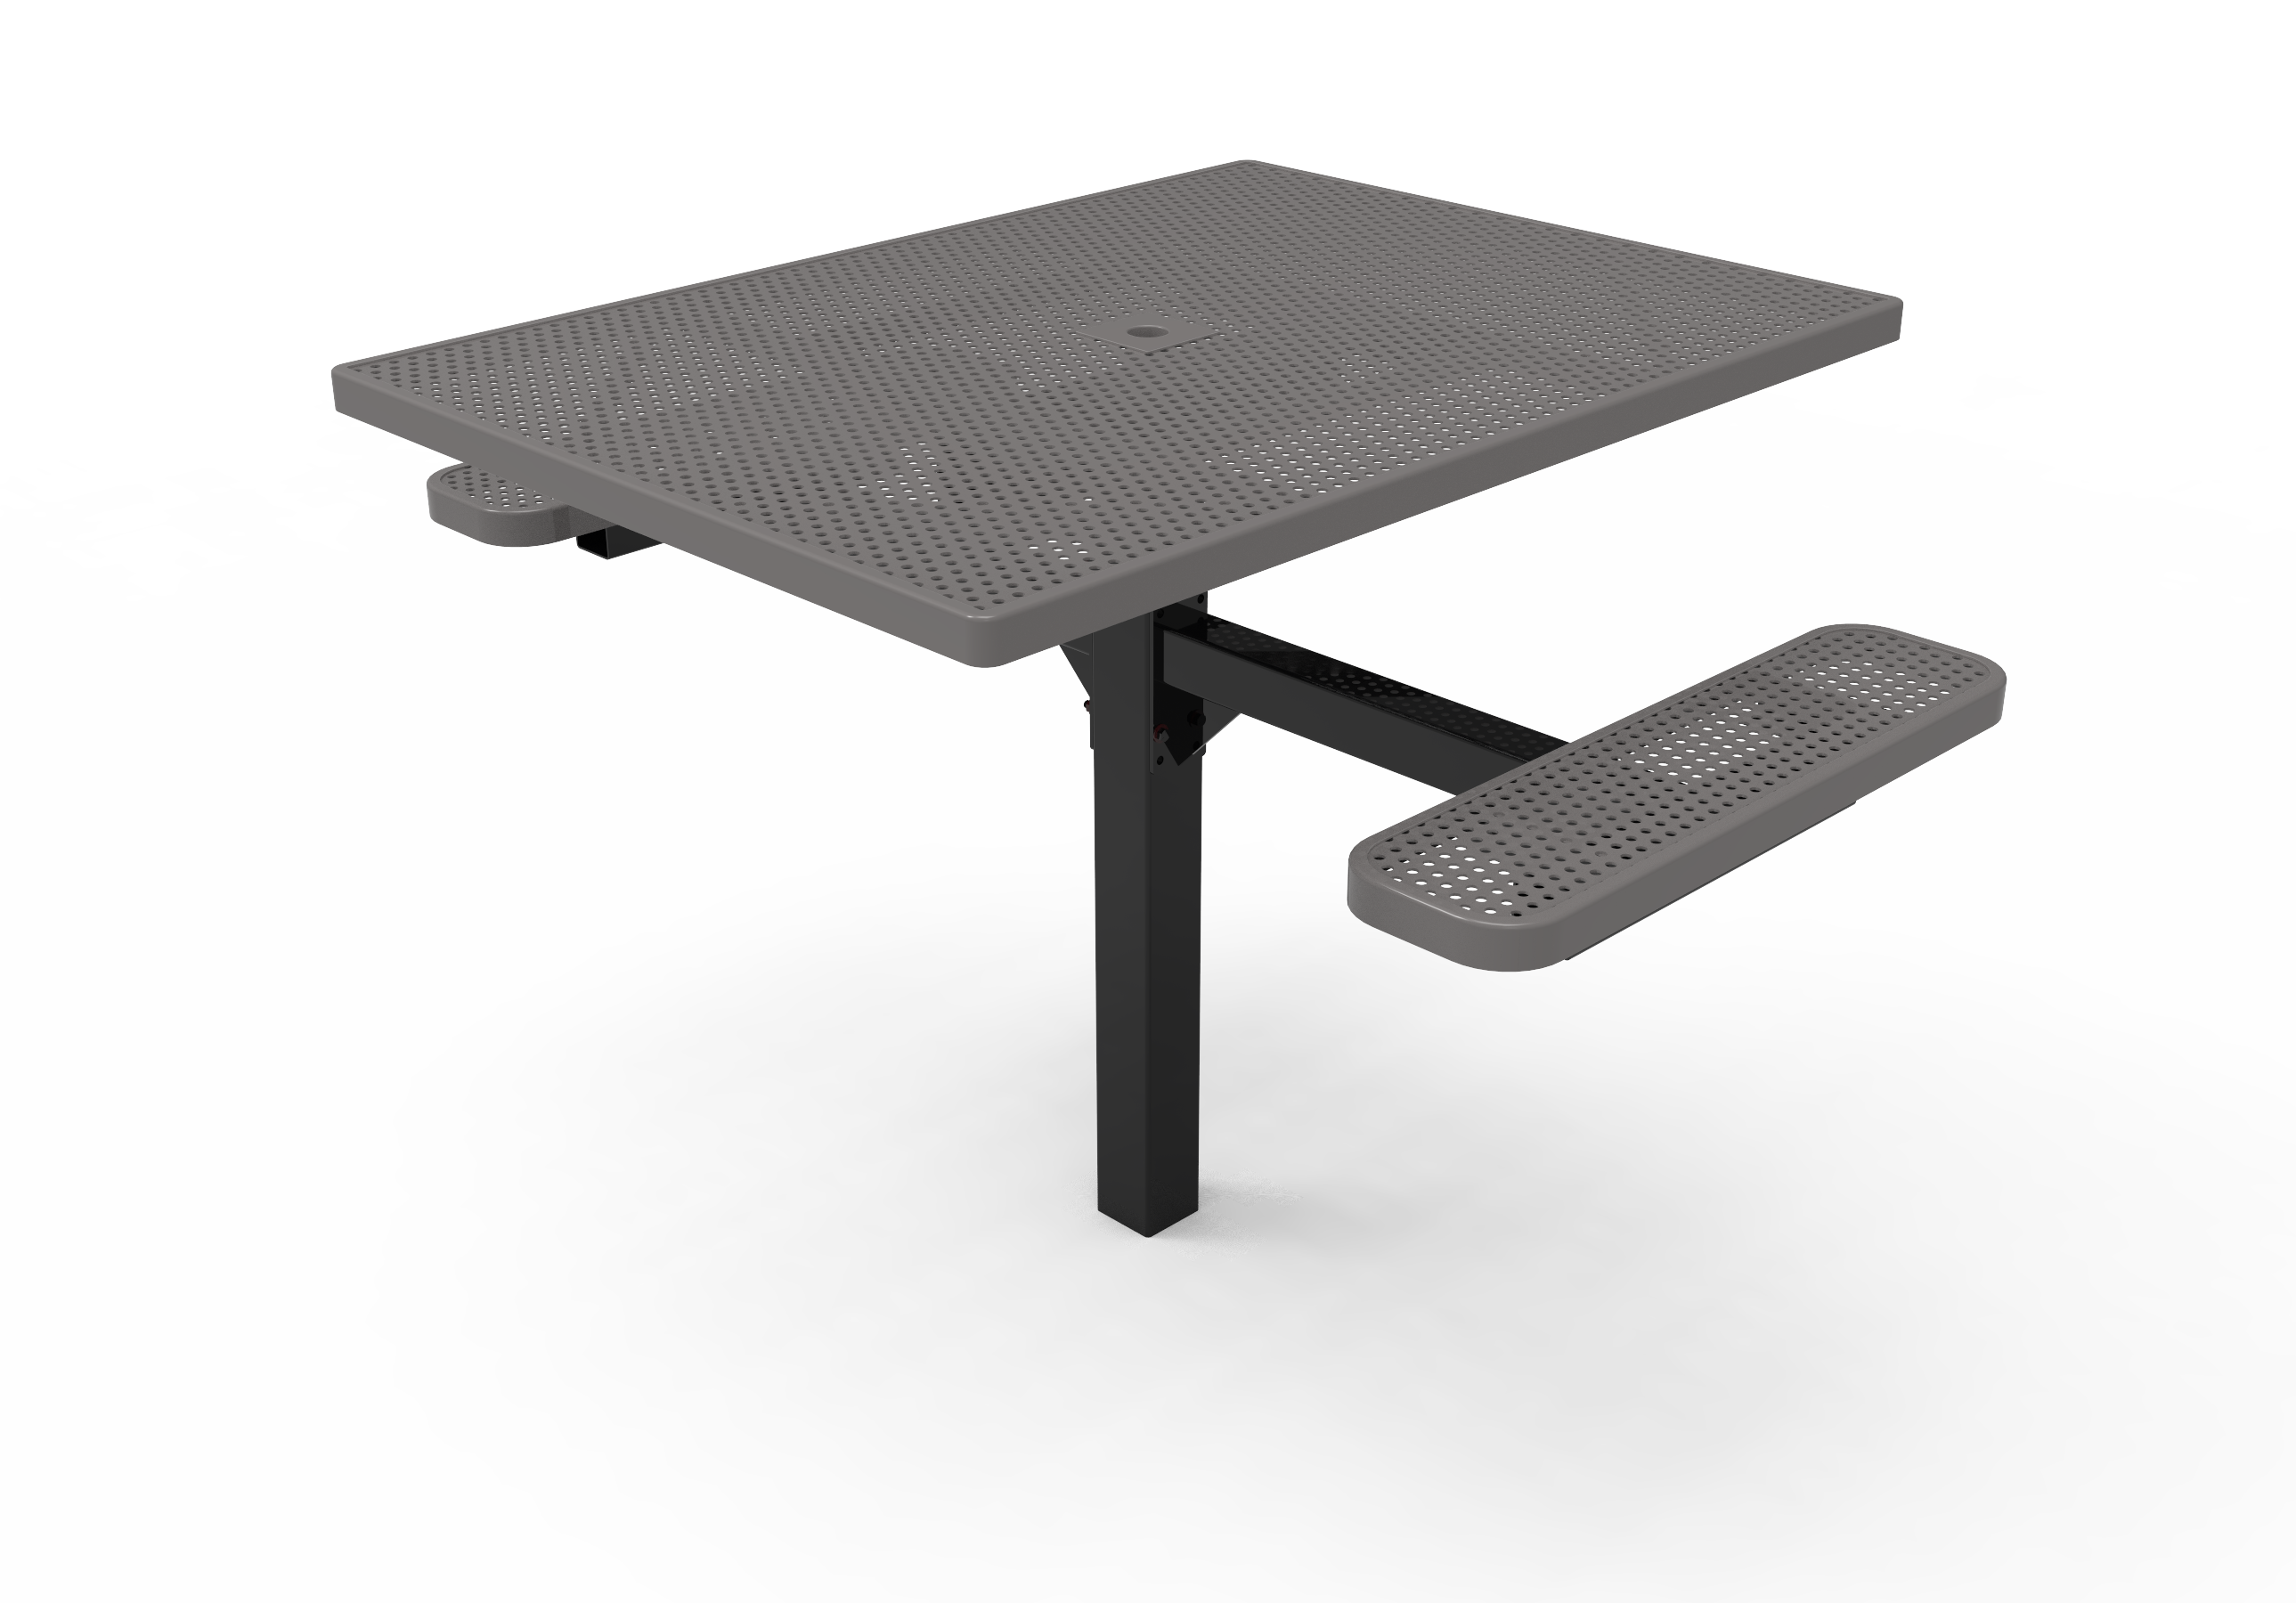 Lexington Square Pedestal Table- ADA Accessible, Frame with Powder Coat Finish, Top and Seats with Advanced DuraLex Coating